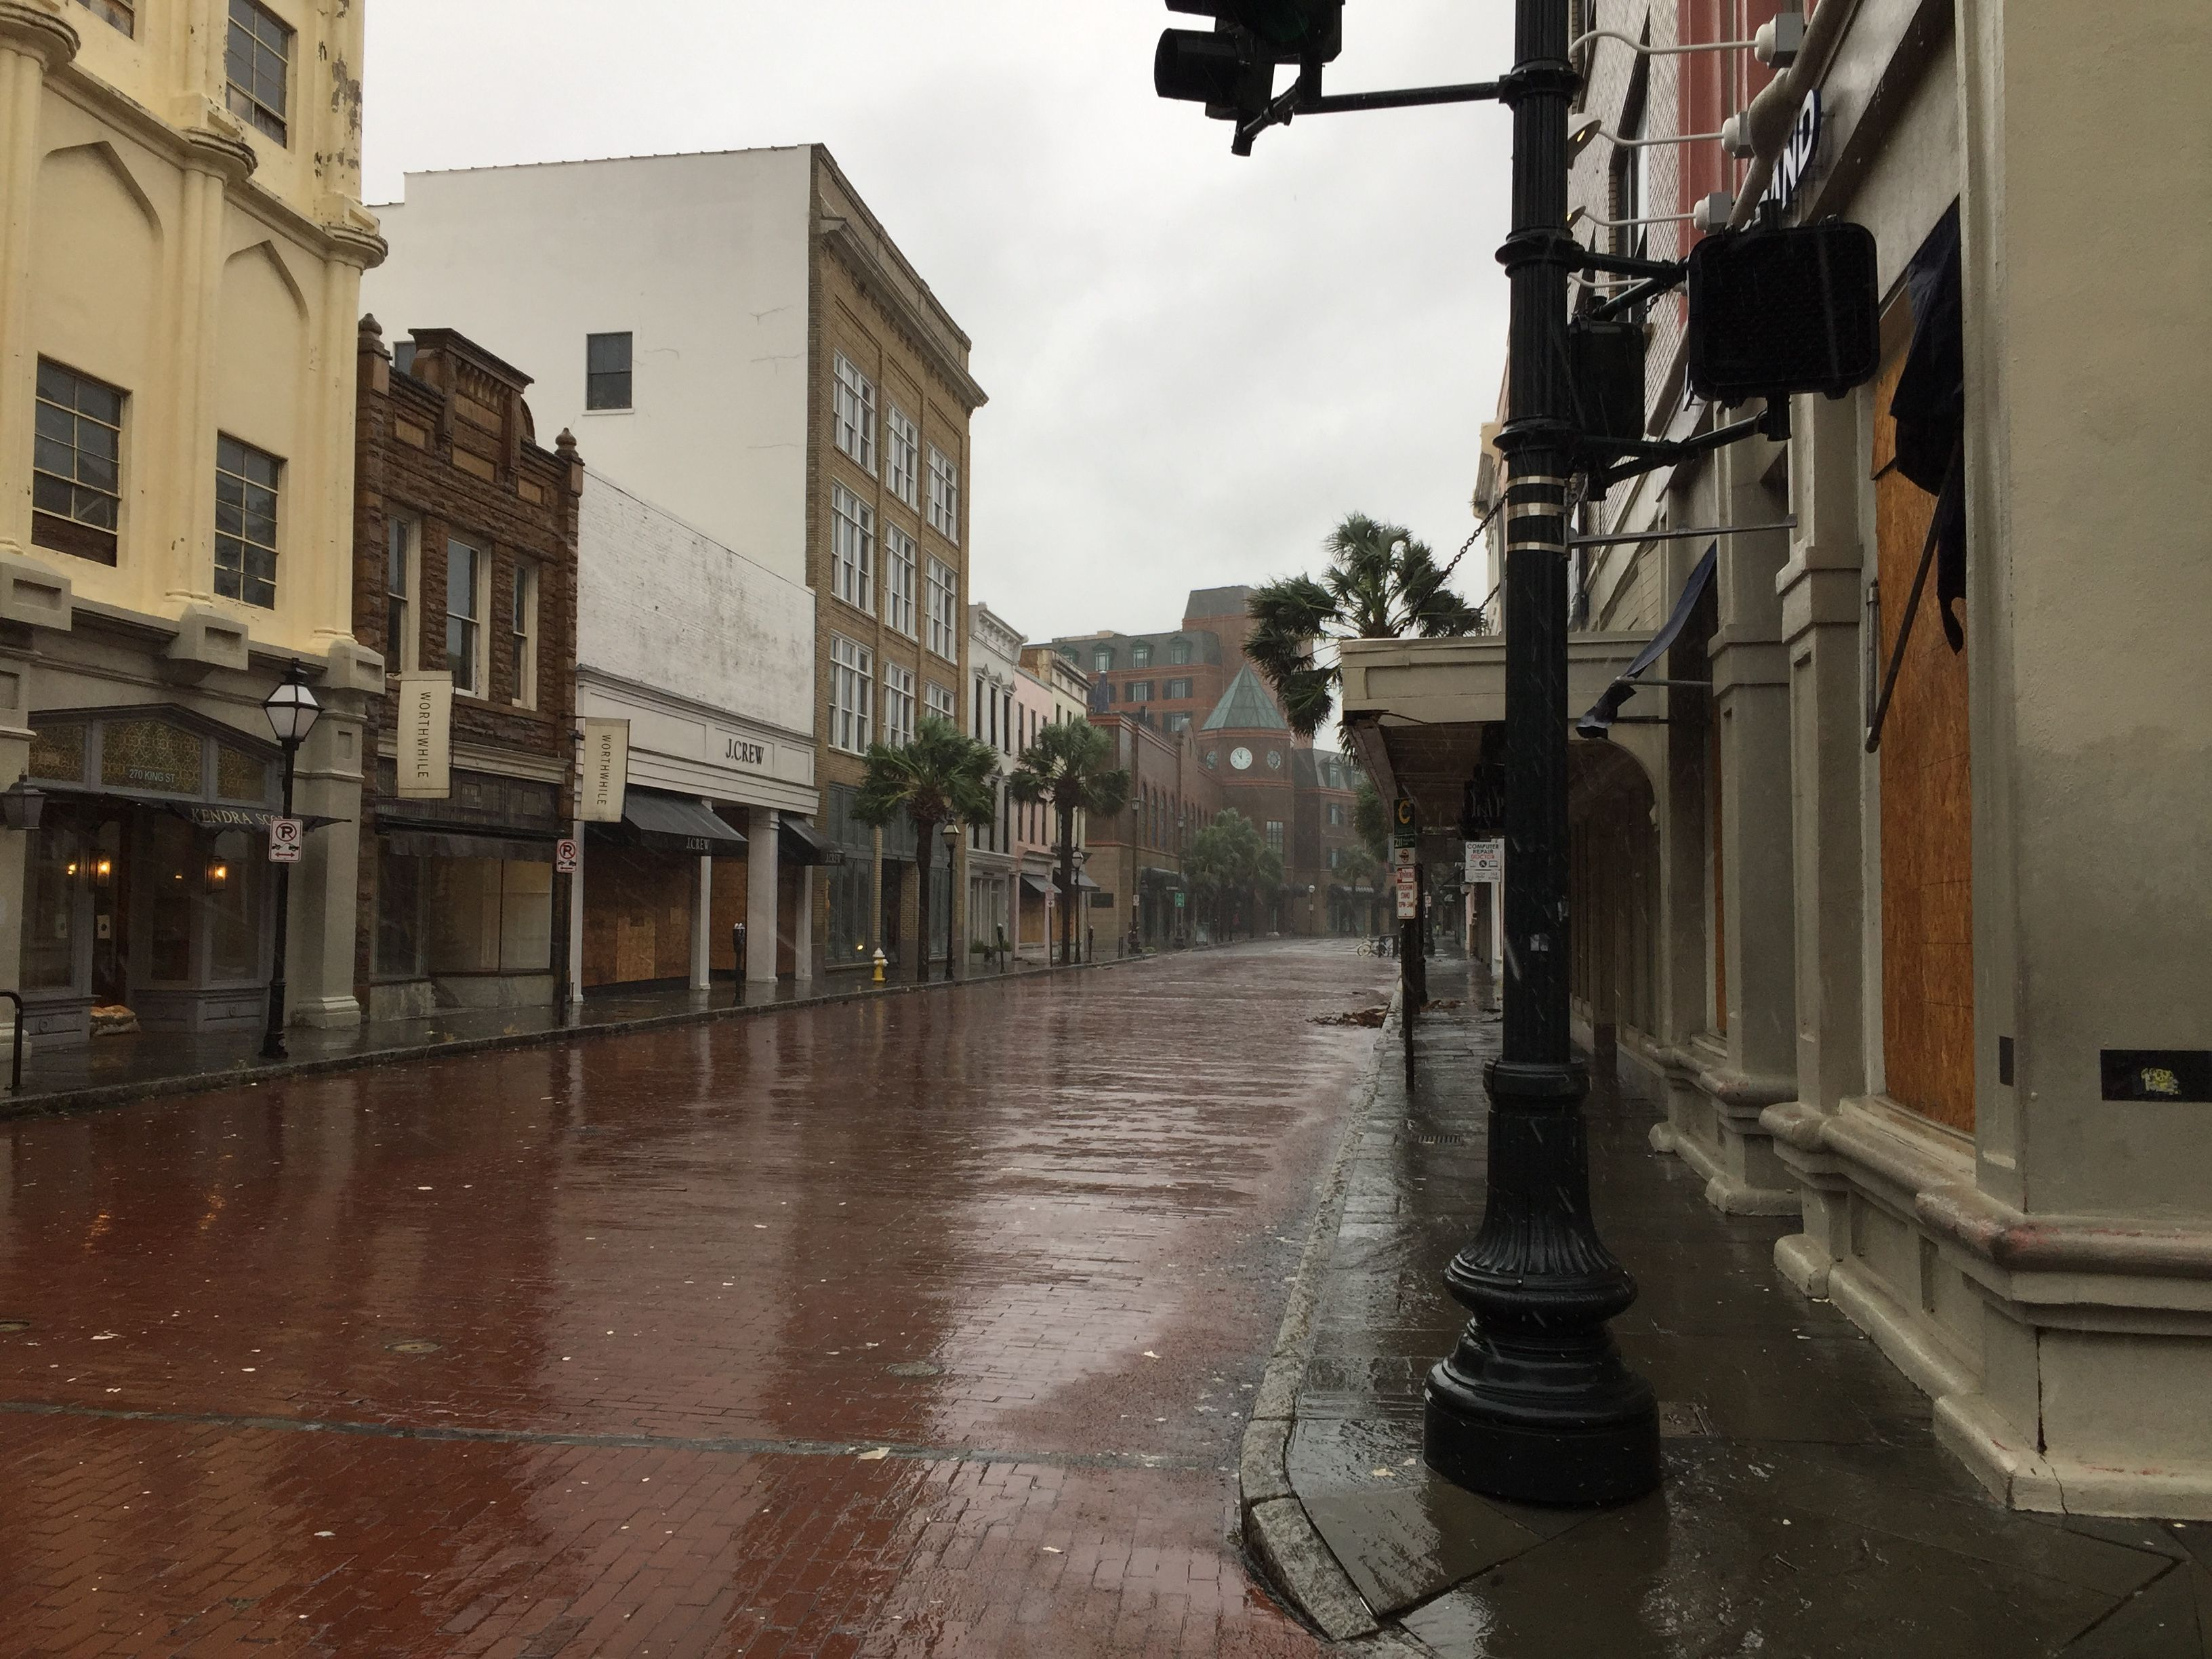 The streets of Charleston, South Carolina were like a ghost town yesterday